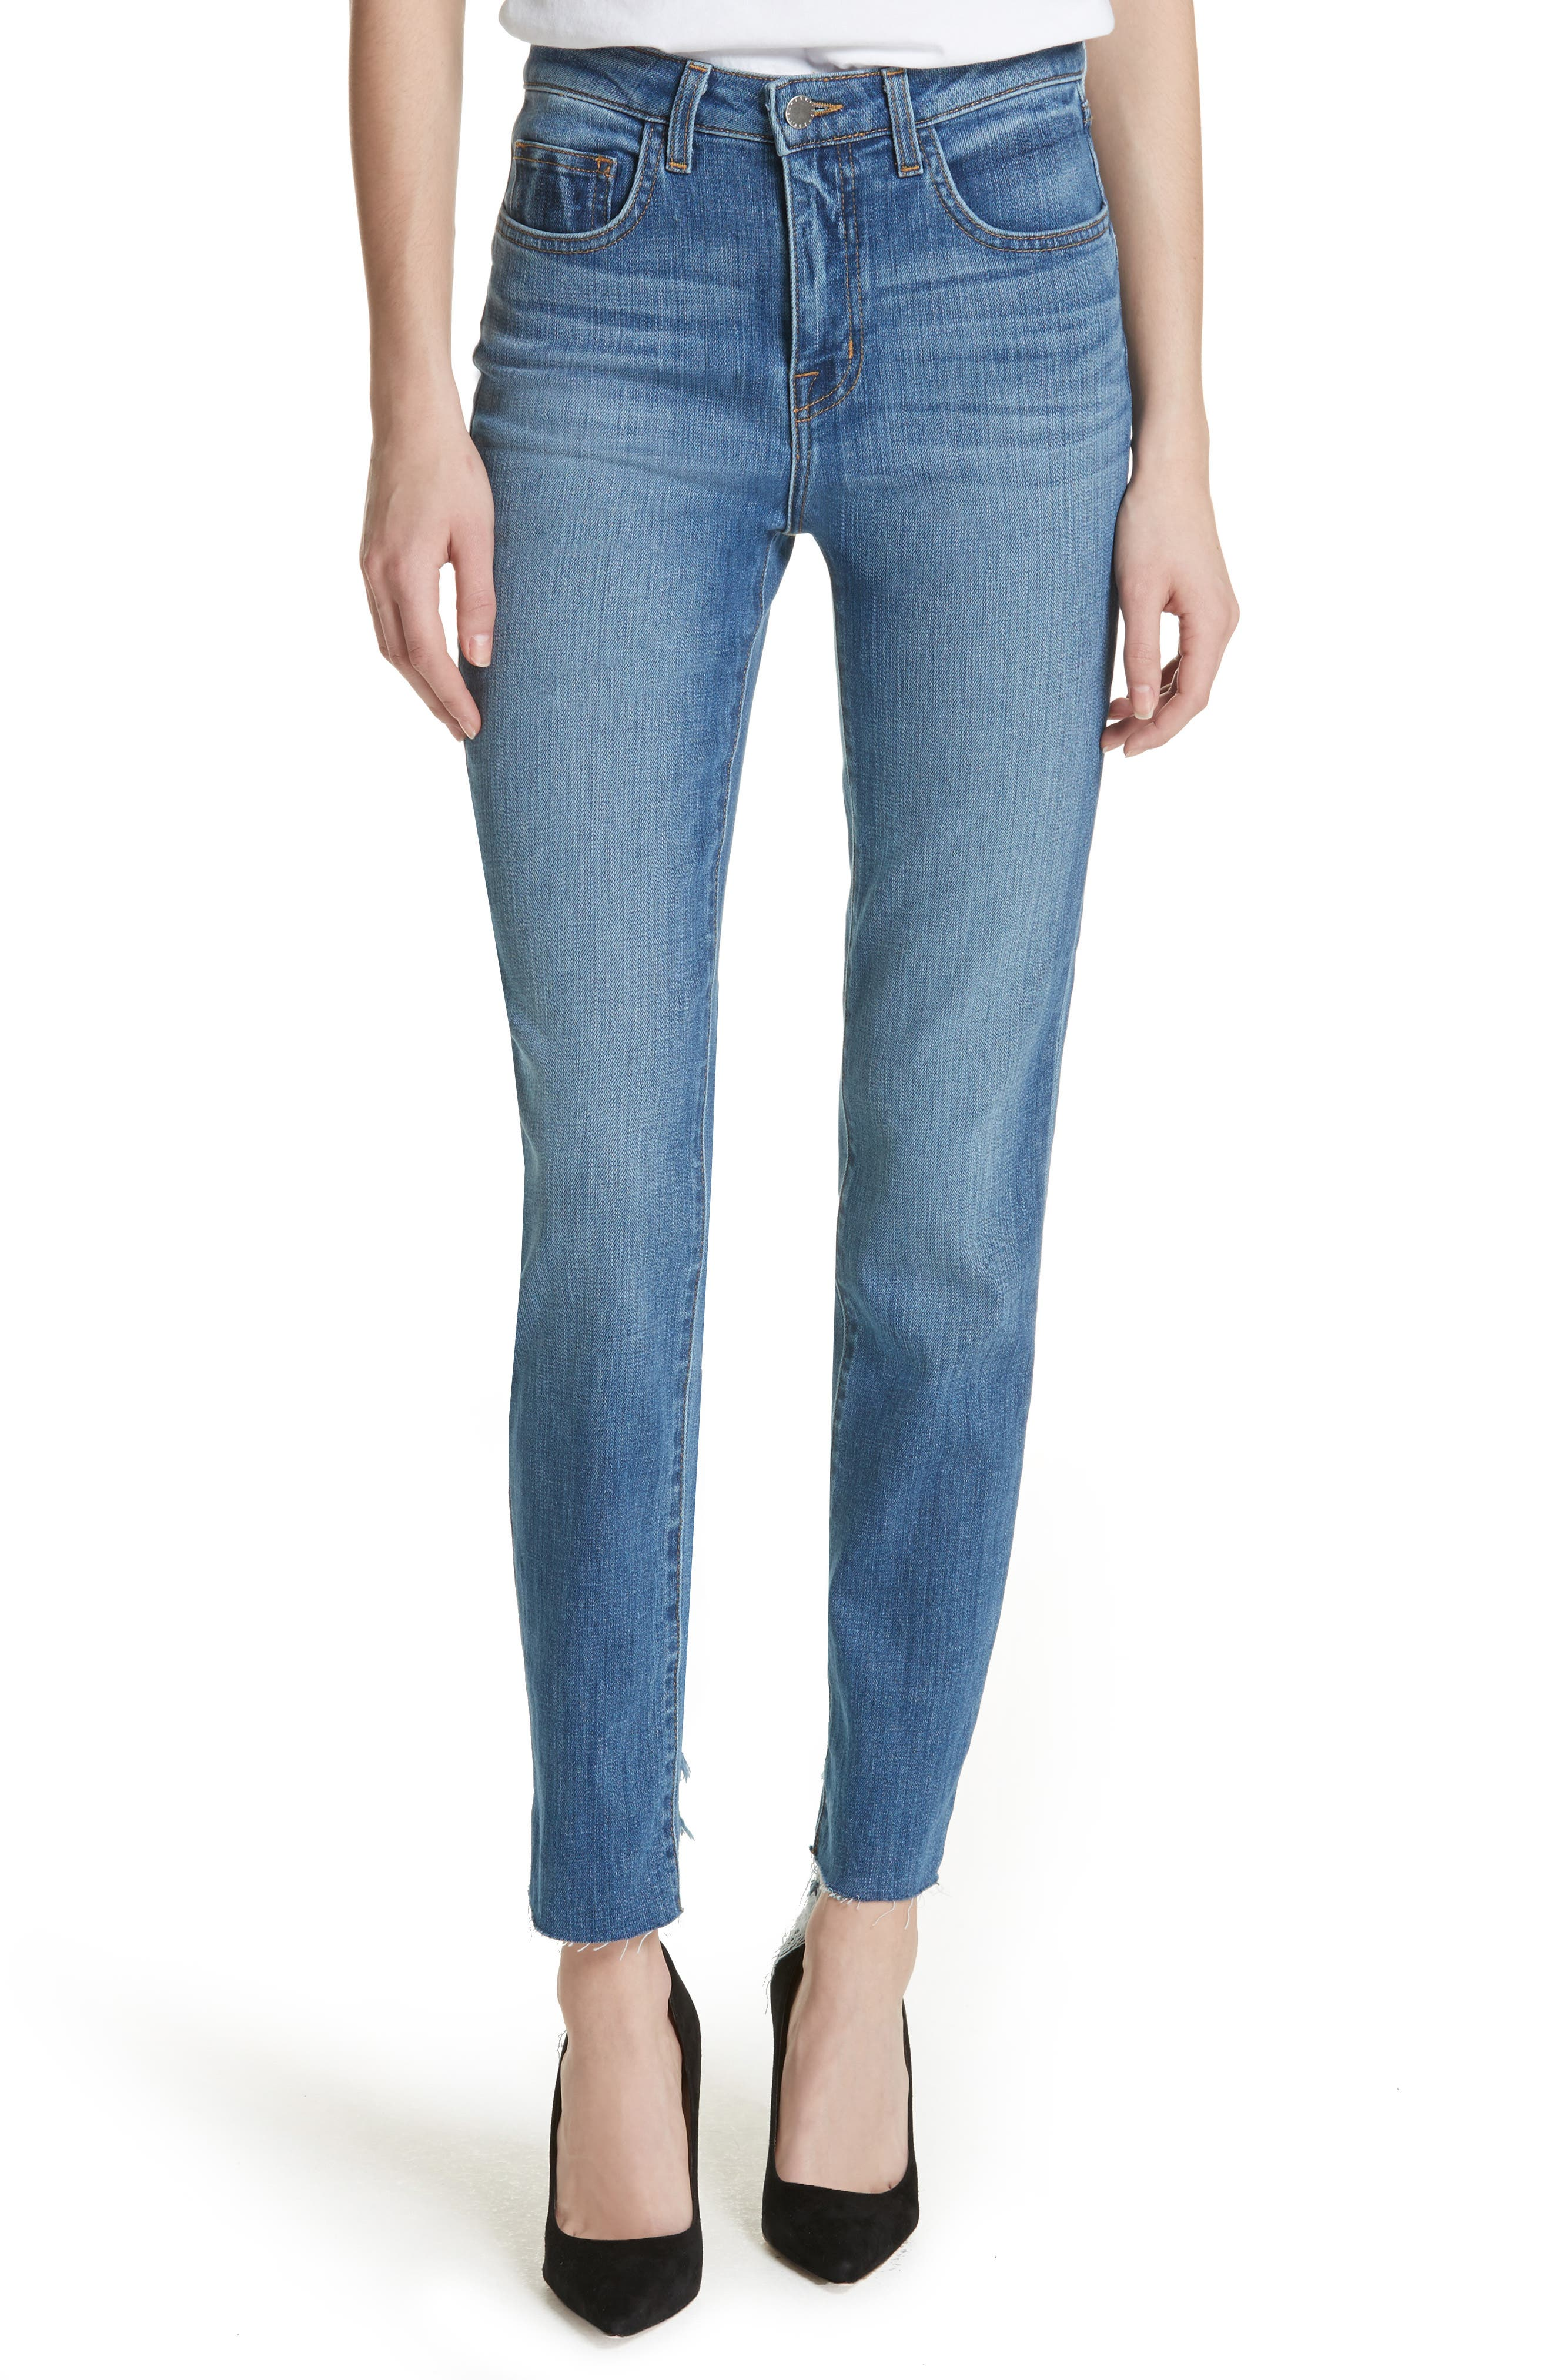 L'AGENCE Lorelei High Waist Slim Straight Jeans (Classic Light Vintage)